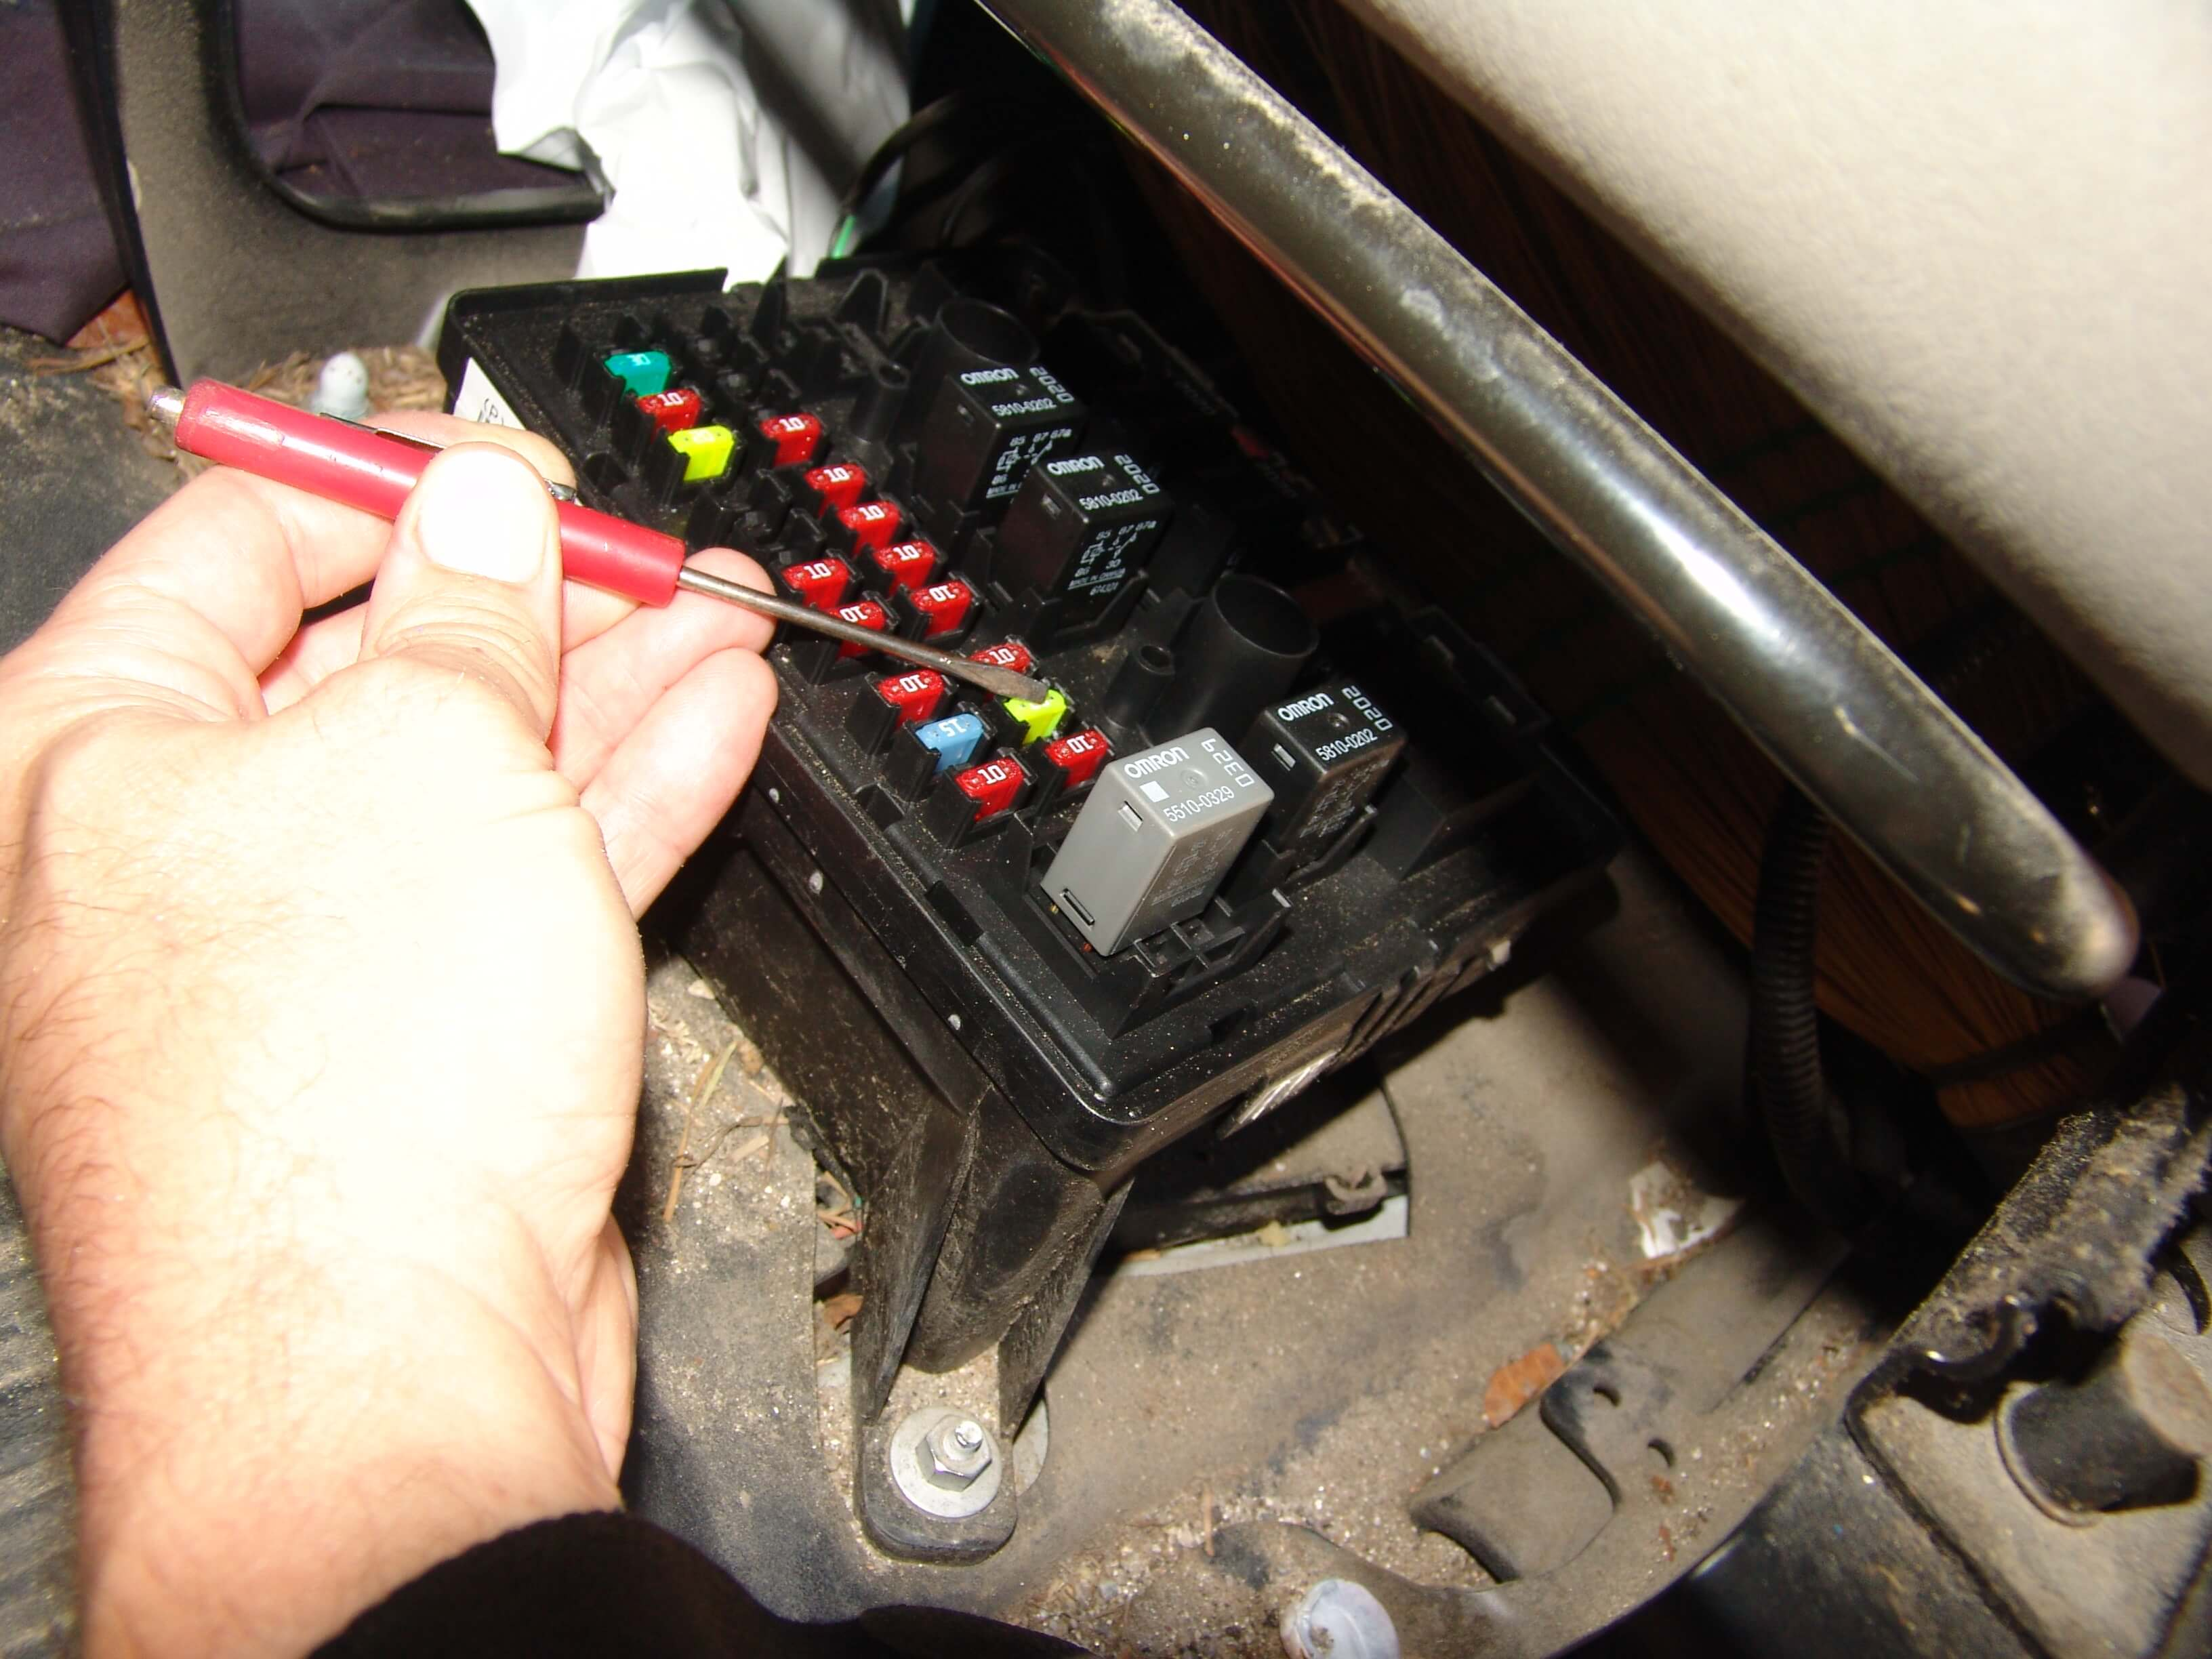 Fuse #10 in the under seat fuse box.